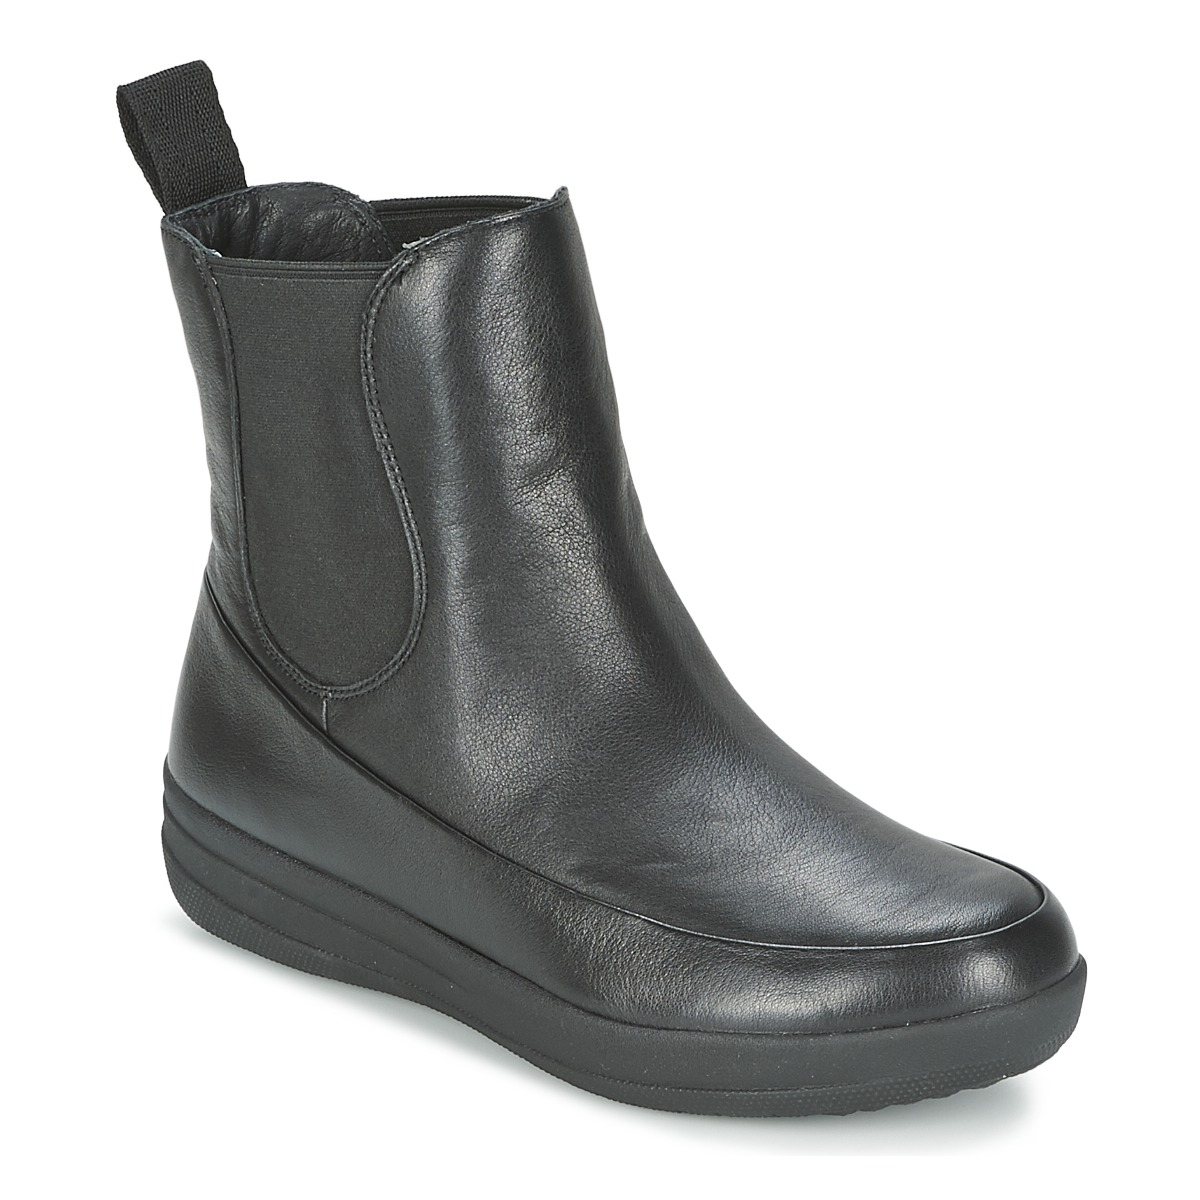 FitFlop FF-LUX CHELSEA BOOT Noir